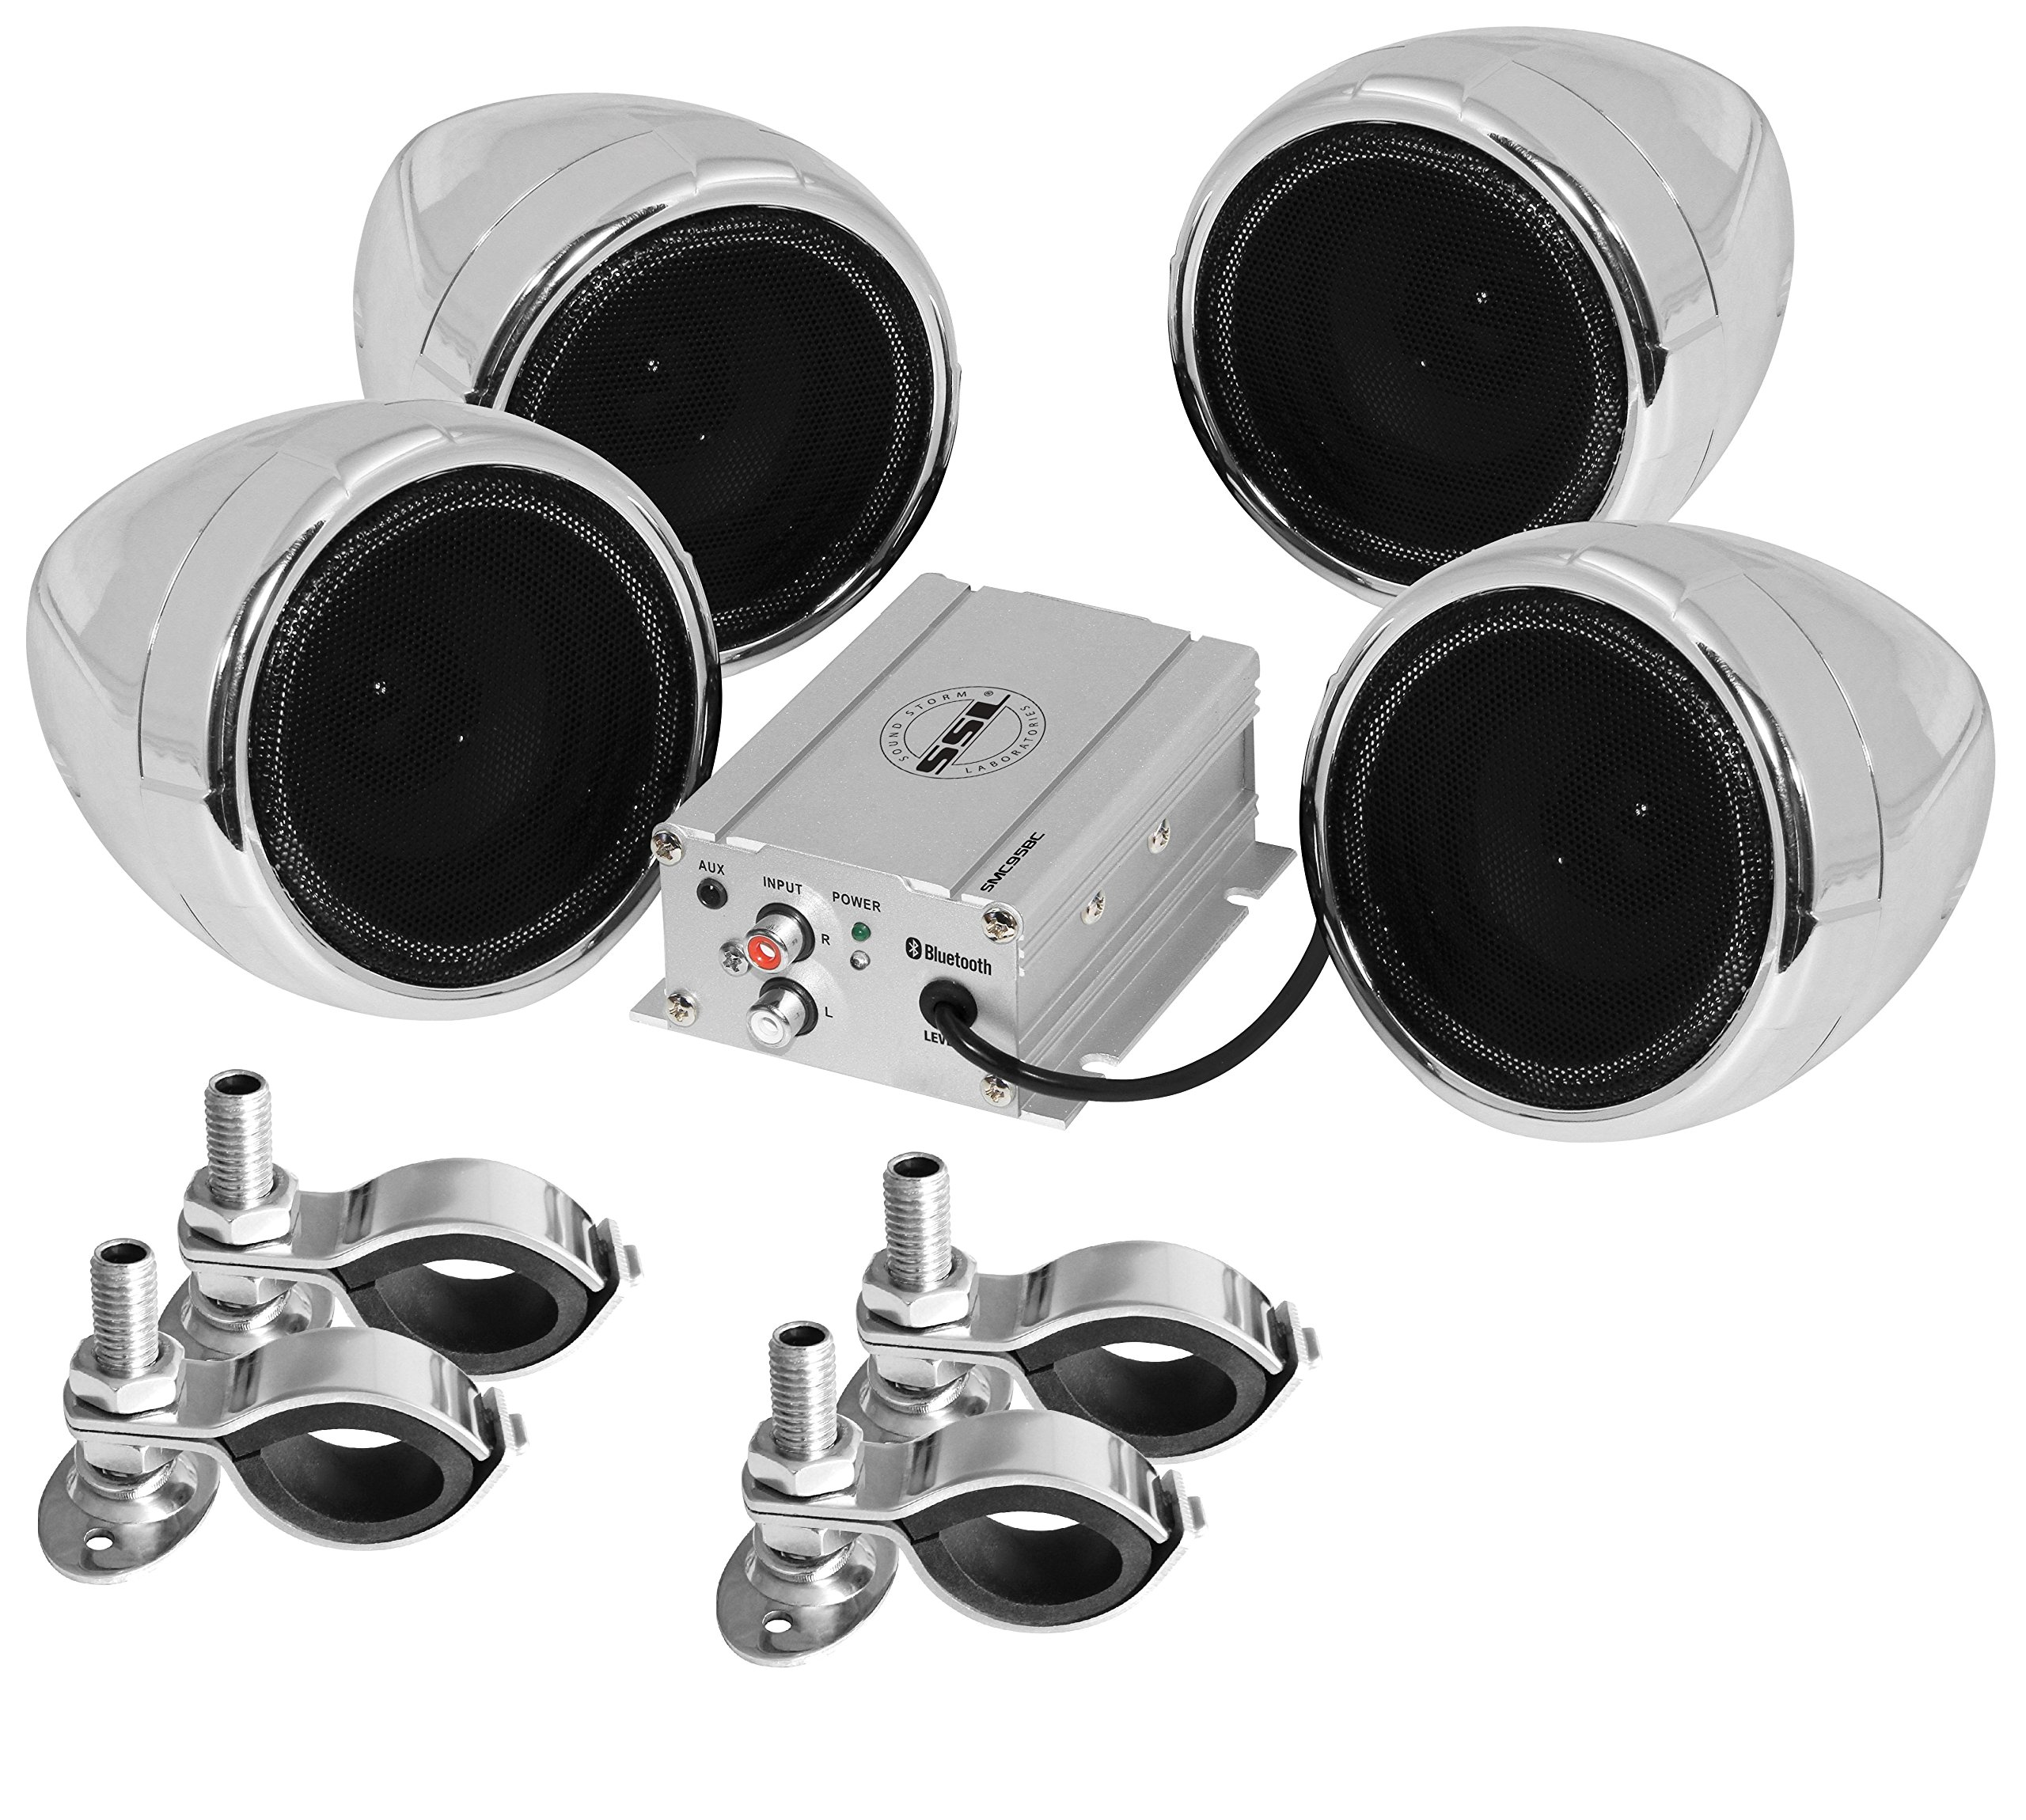 Sound Storm SMC95BC Sound System, Weatherproof, Bluetooth Amplifier, 3 Inch Speakers, Inline Volume Control, Ideal for Motorcycles/ATV and 12 Volt Applications